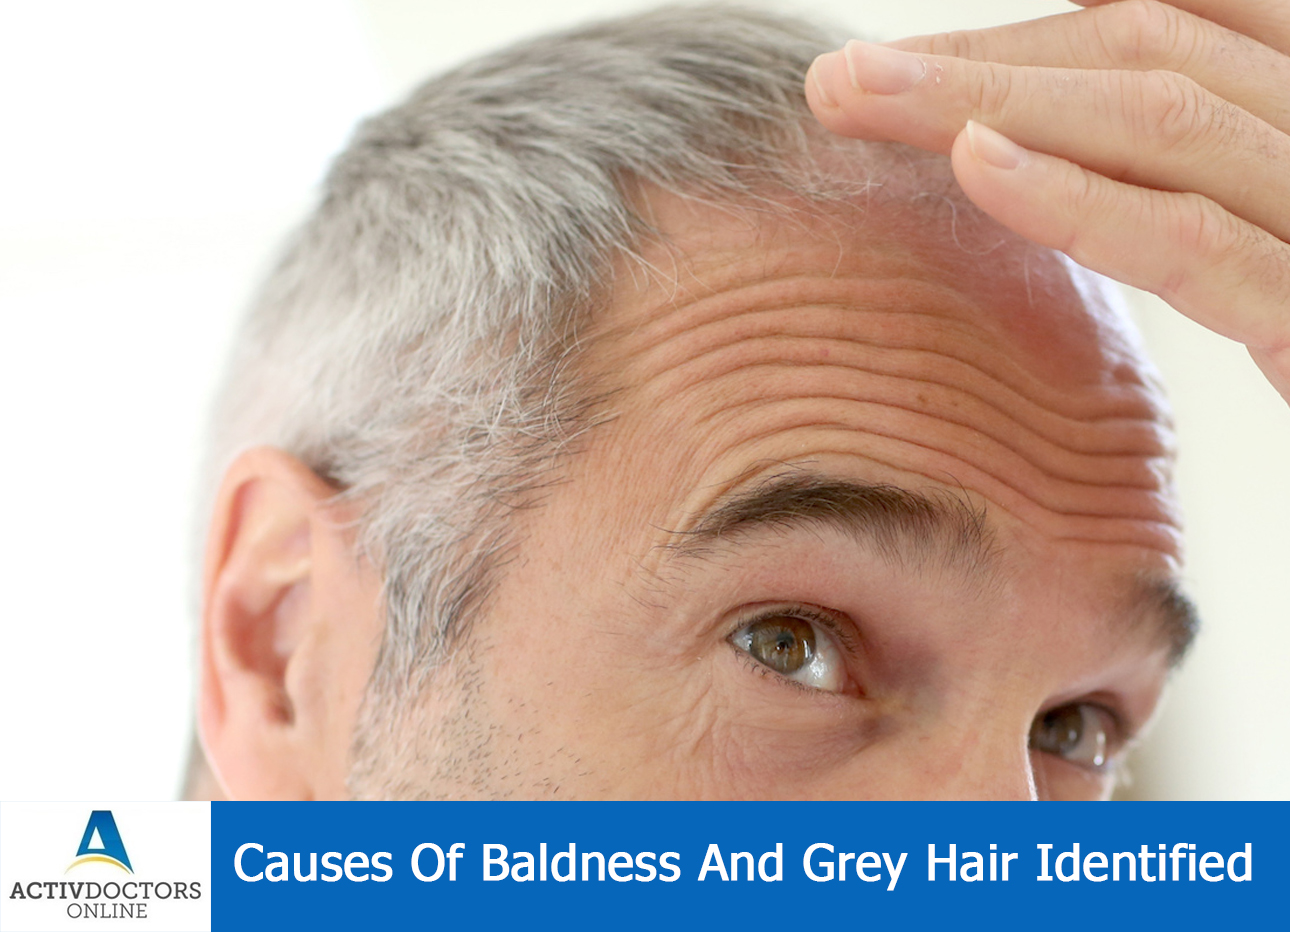 Causes Of Baldness And Grey Hair Identified